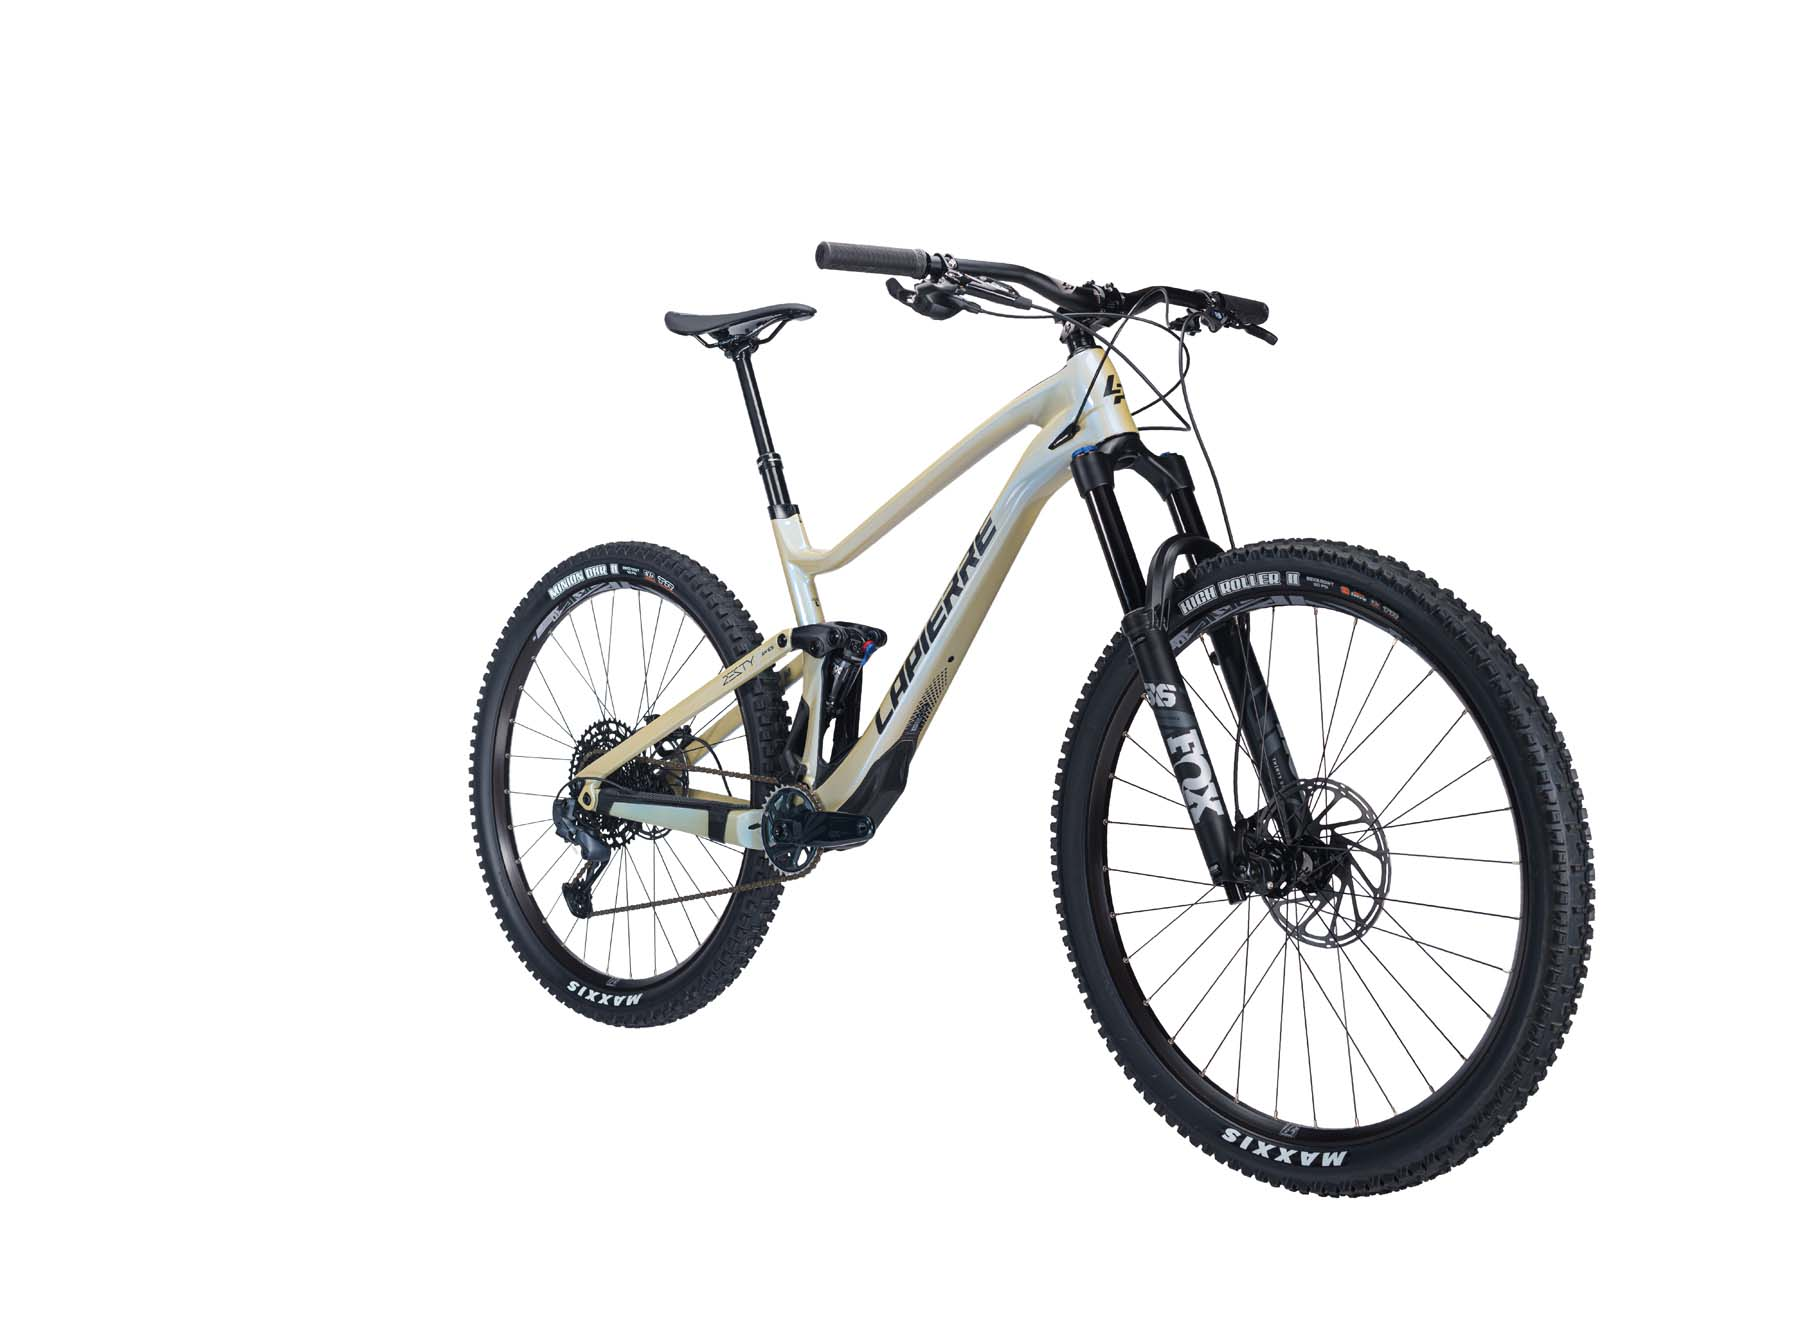 Lapierre Zesty AM CF 6.9 2021 All-Mountain Bike 1